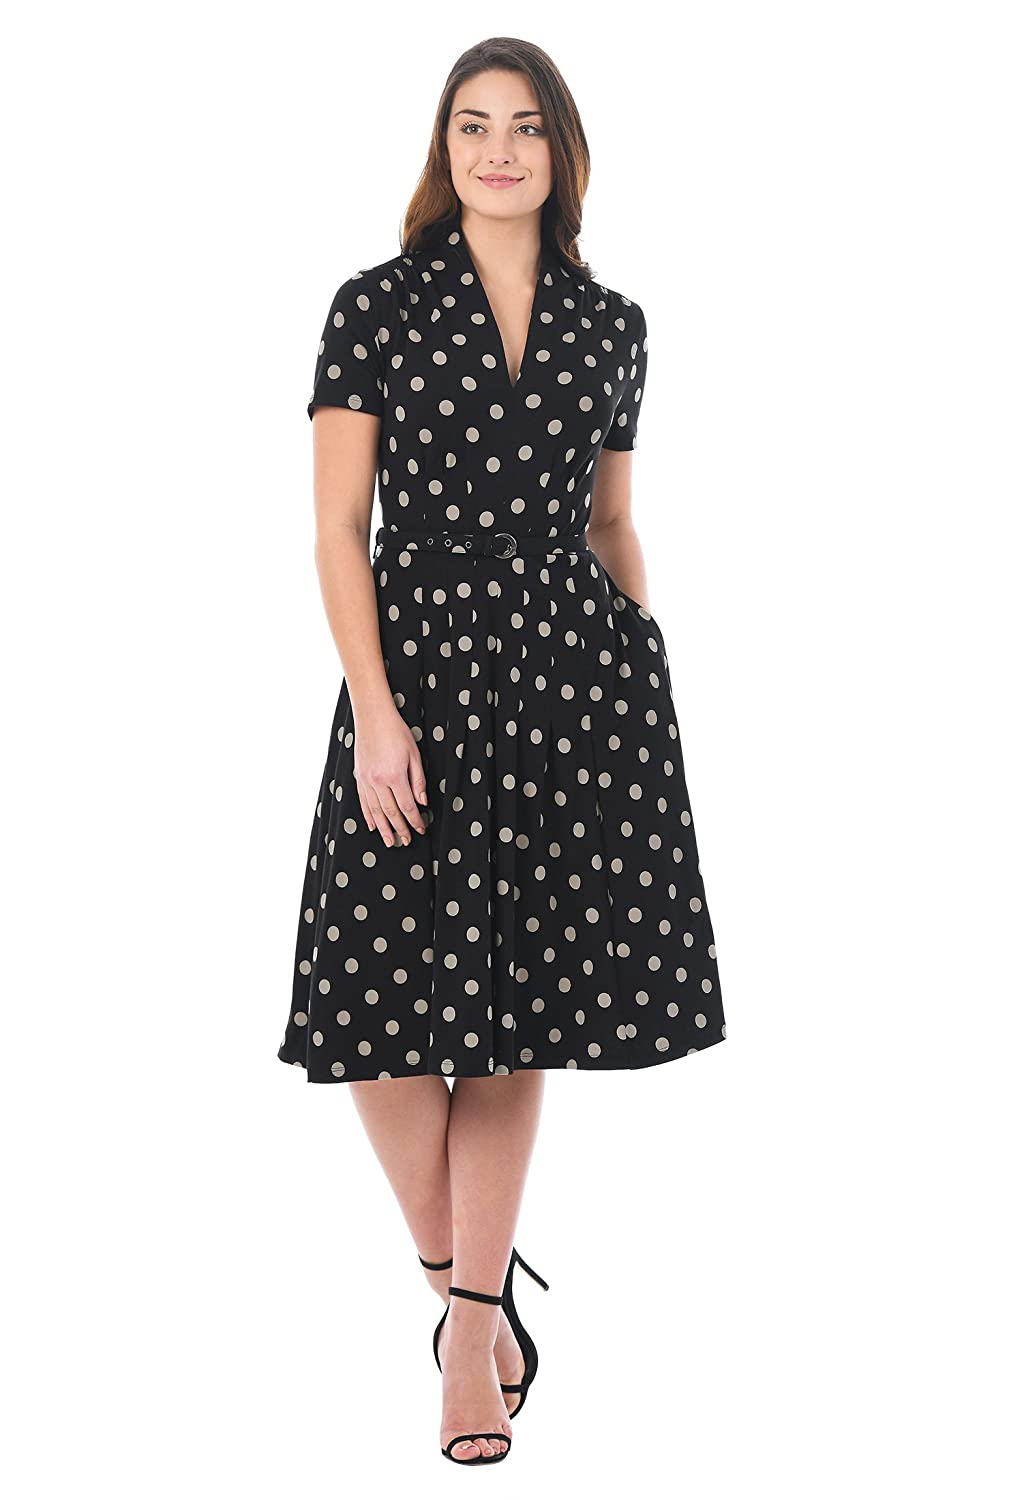 1940s Style Dresses | 40s Dress, Swing Dress Polka Dot Cotton Knit Belted Dress $54.95 AT vintagedancer.com